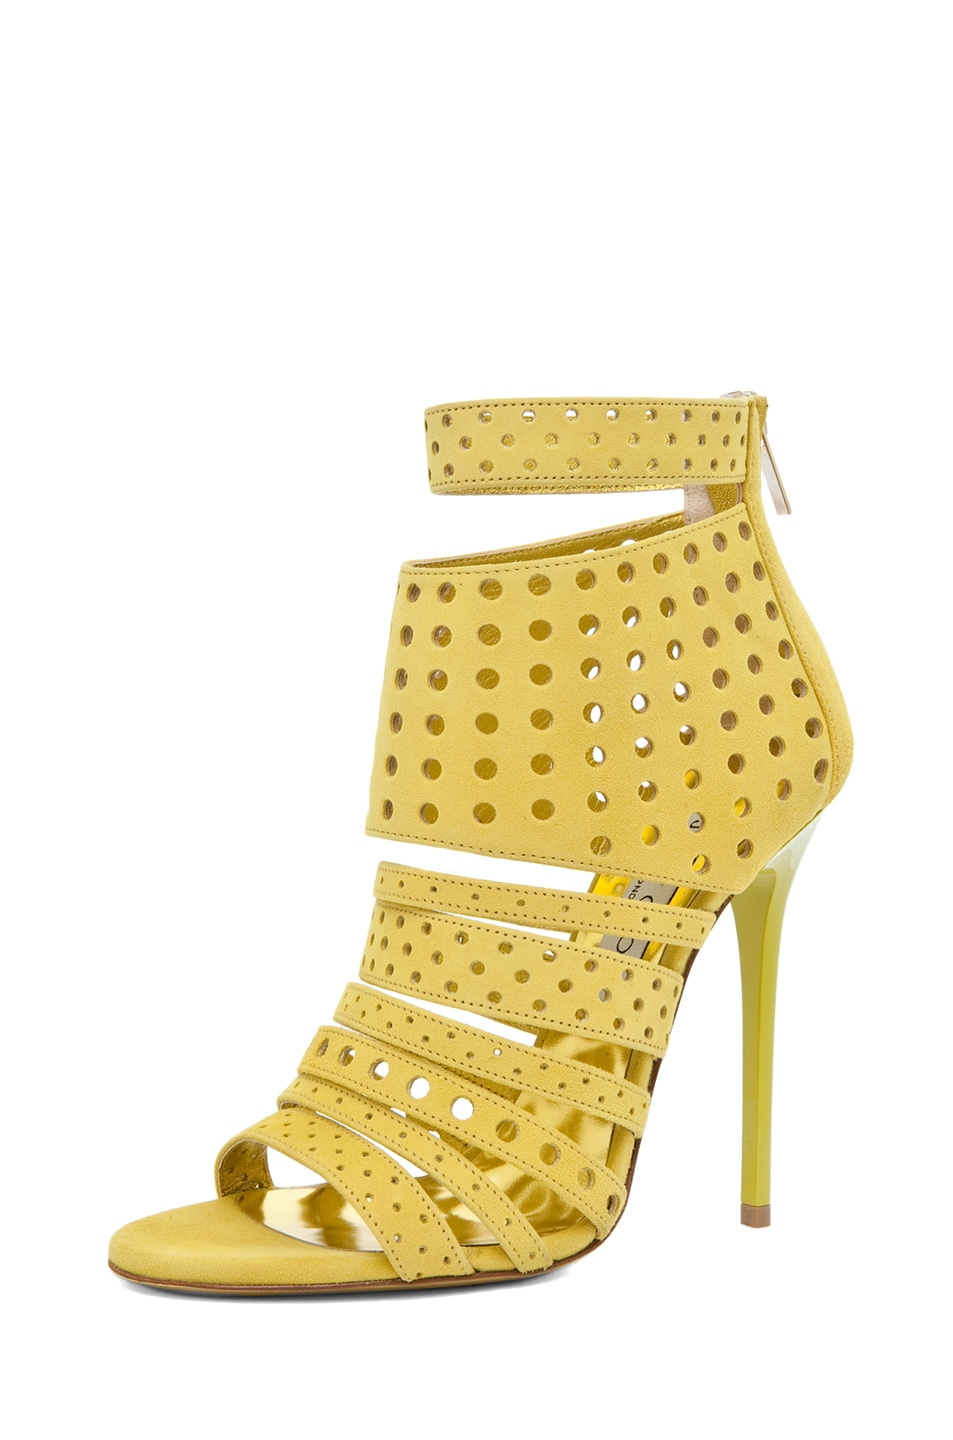 Image 2 of Jimmy Choo Malika Suede Perforated Heel in Citrine